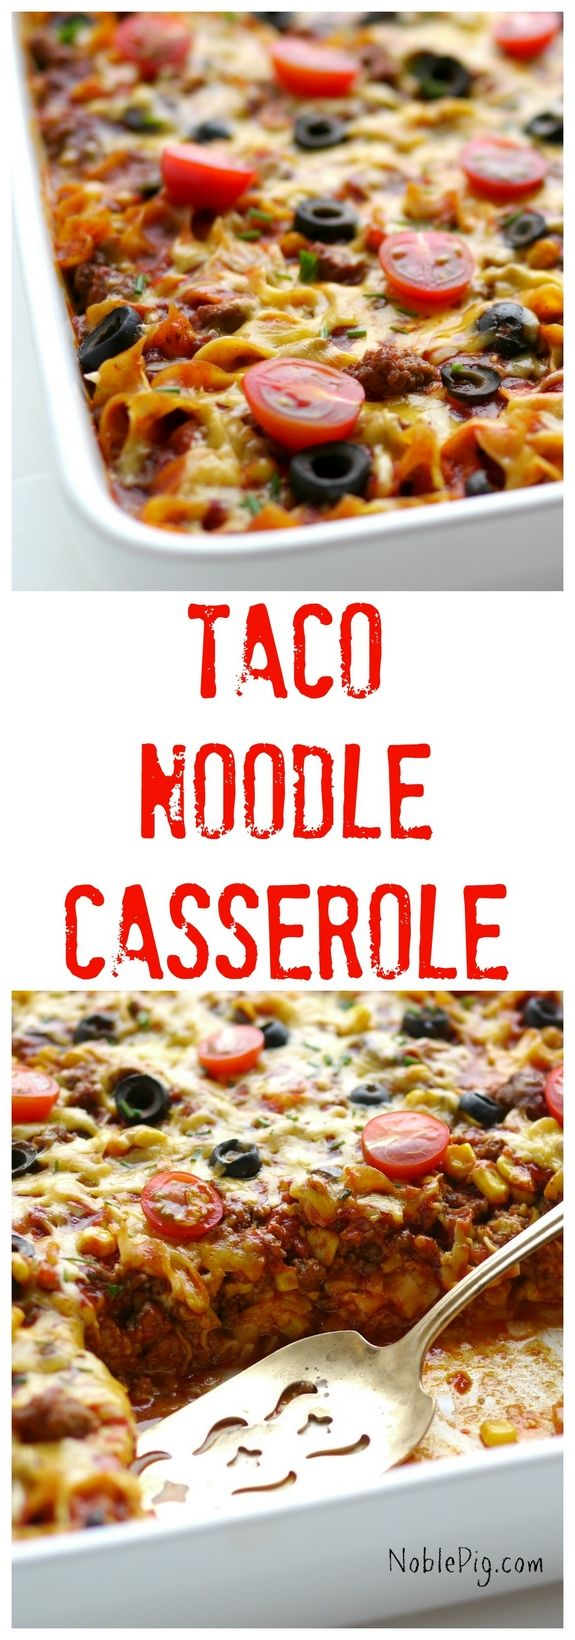 Taco Noddle Casserole is a wonderful weeknight family dinner everyone will enjoy. Packed with flavor and so easy to make.